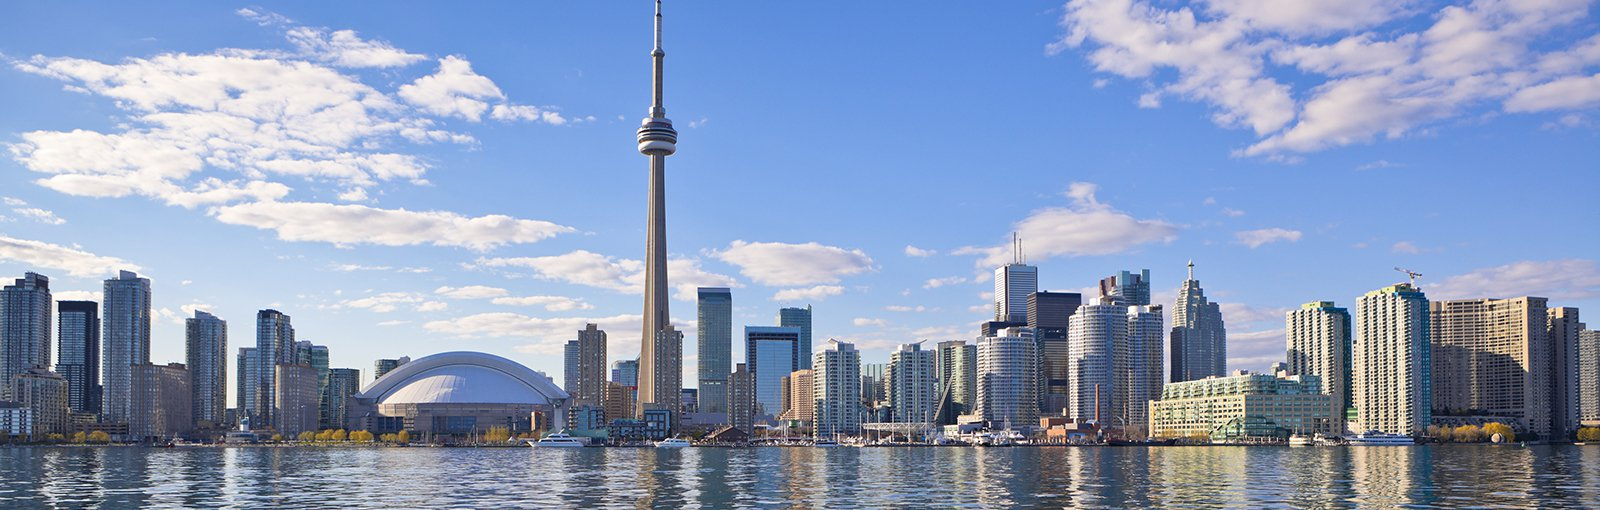 Toronto Data Centers & Colocation